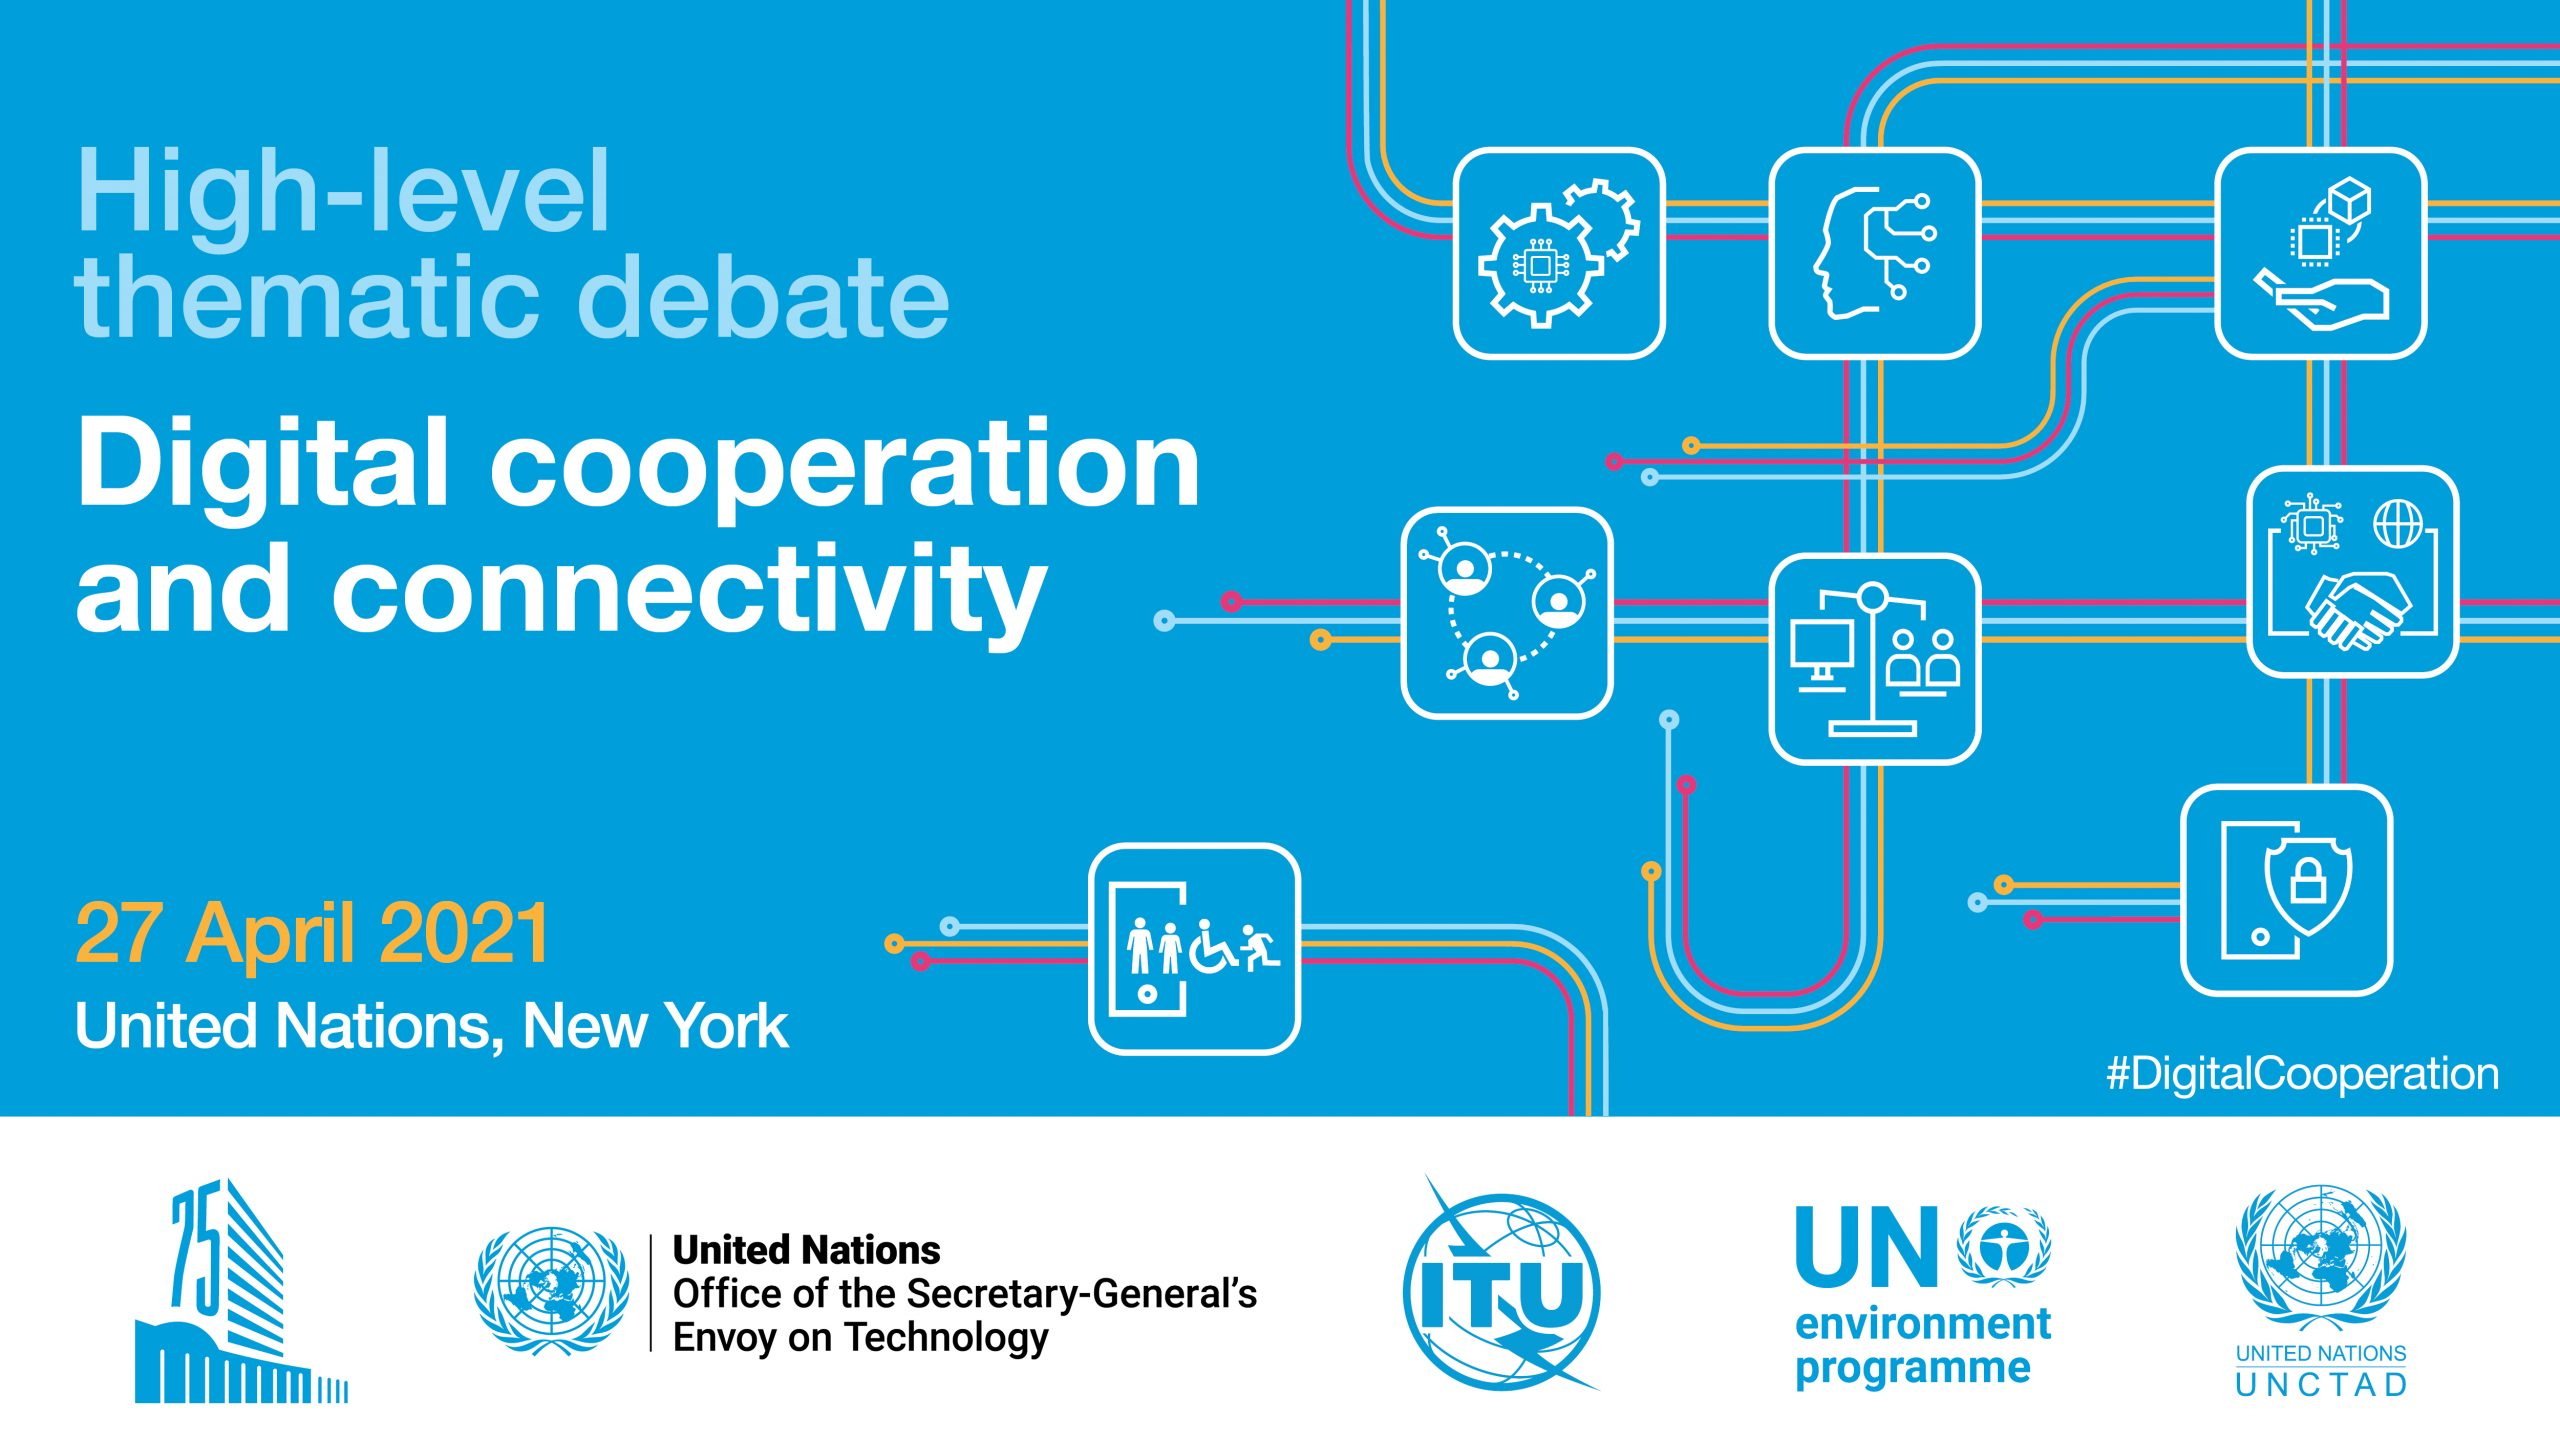 Invitation to UN Debate on Digital Cooperation and Connectivity April 27